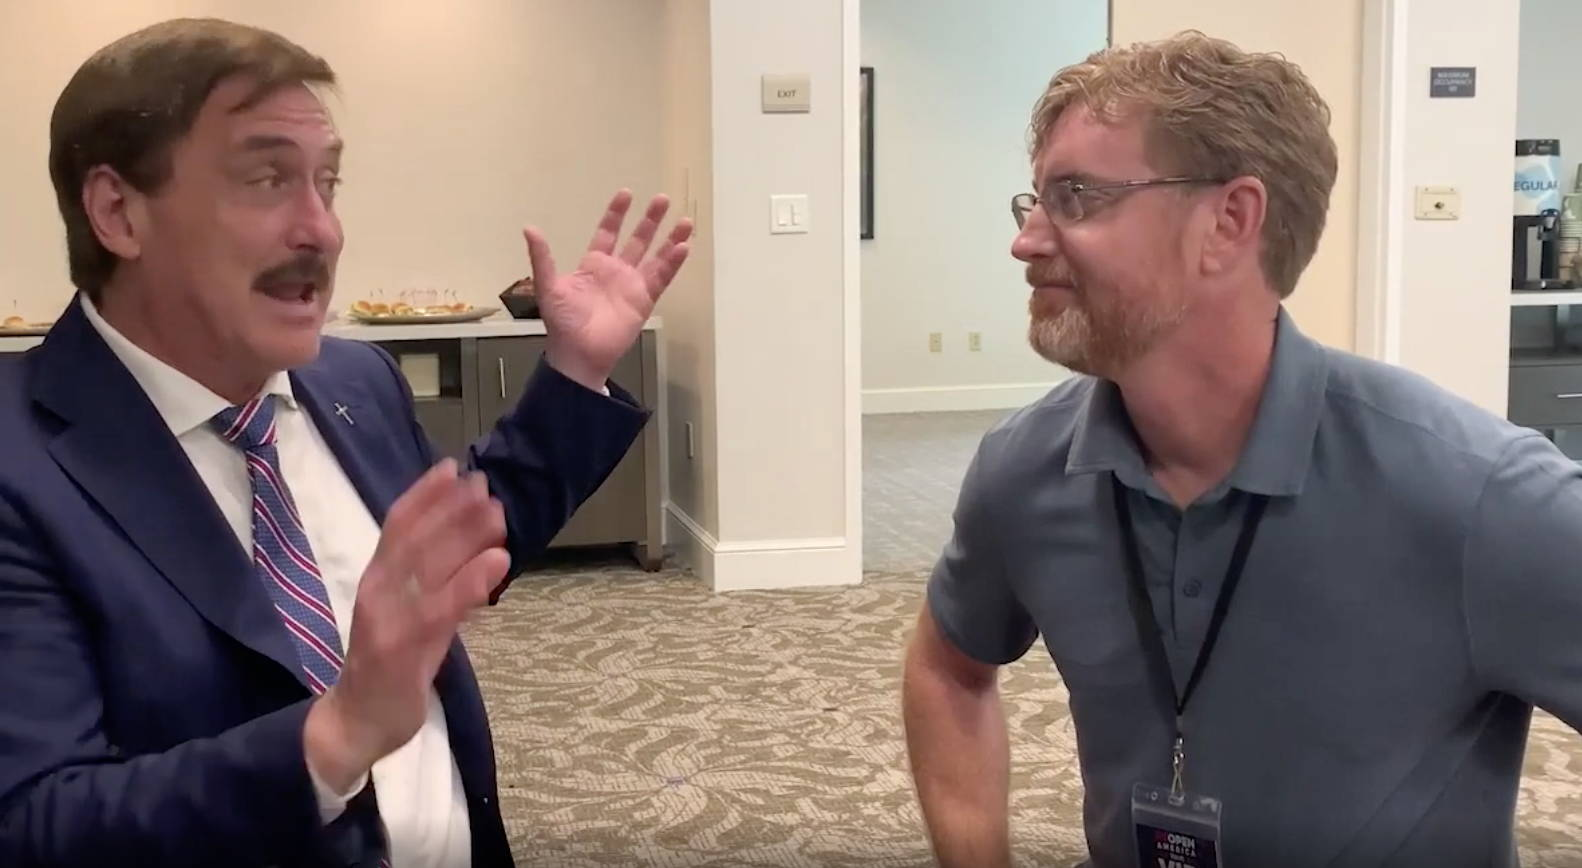 Image of Mike Lindell and Dr. Bryan Ardis